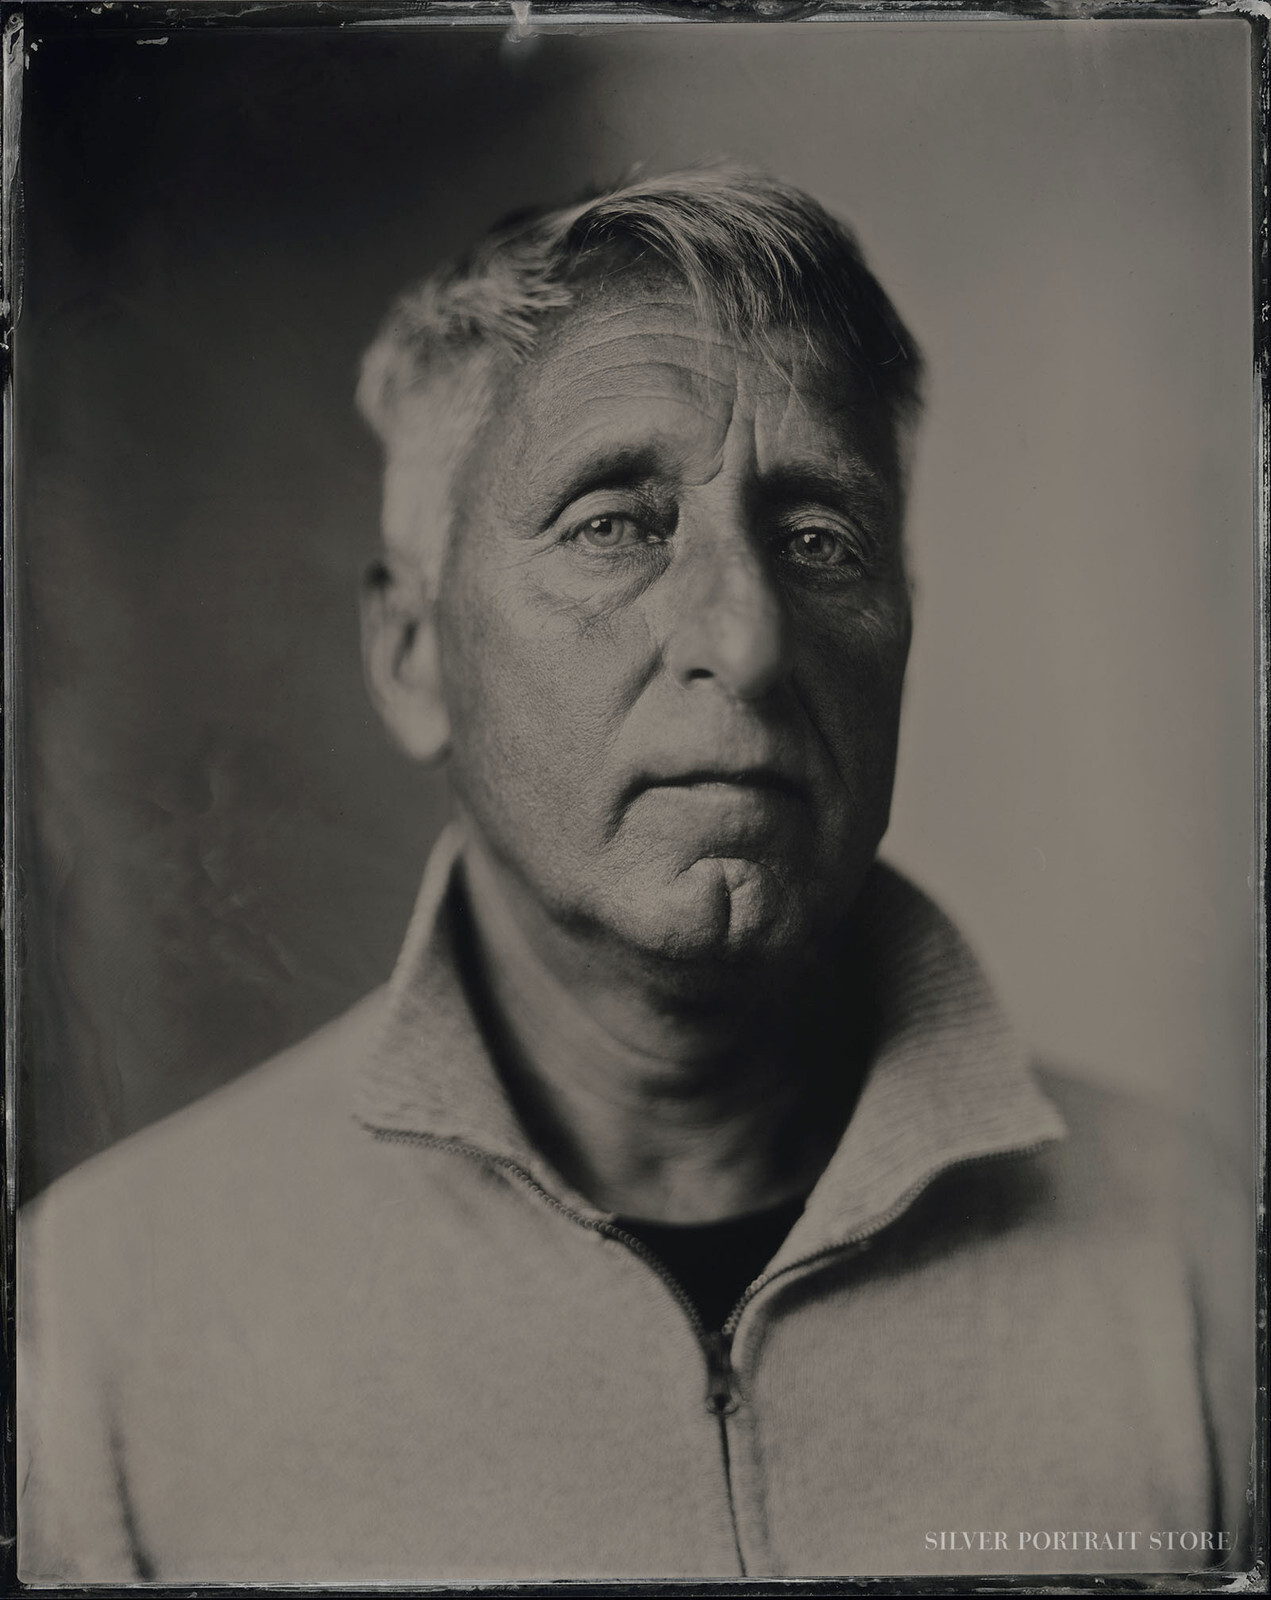 Stag-Silver Portrait Store-Wet plate collodion-Tintype 20 x 25 cm.